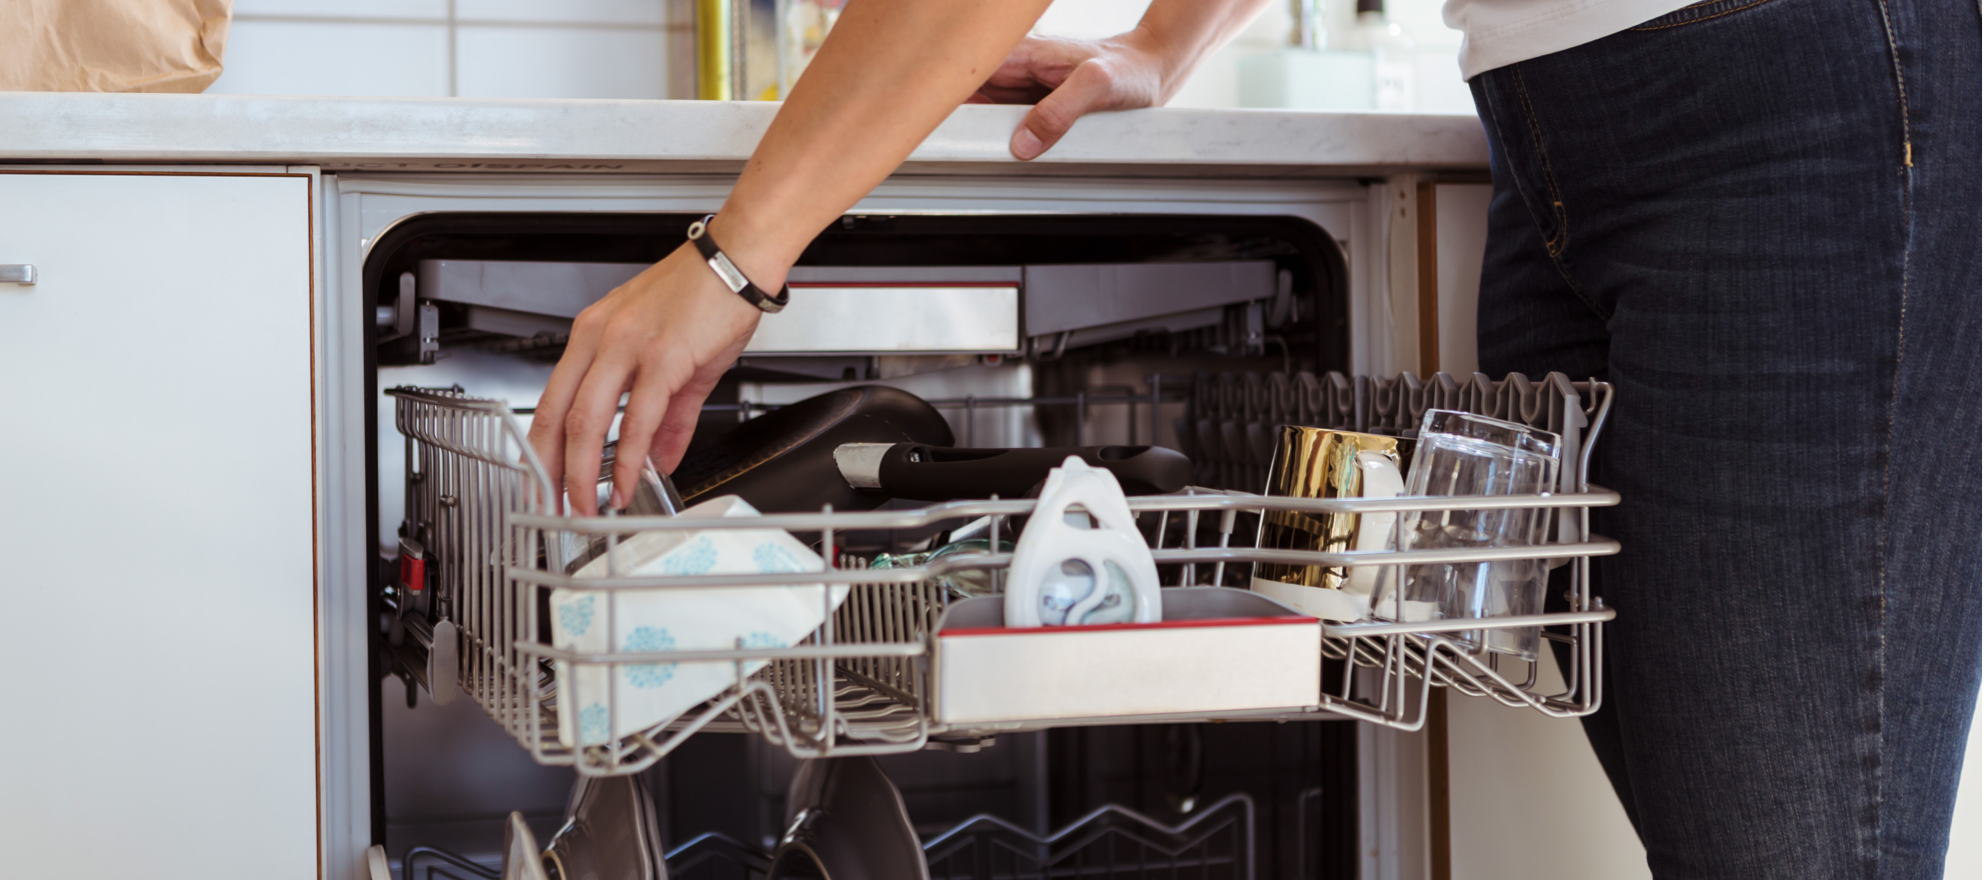 What every homeowner needs to know about upgrading a dishwasher